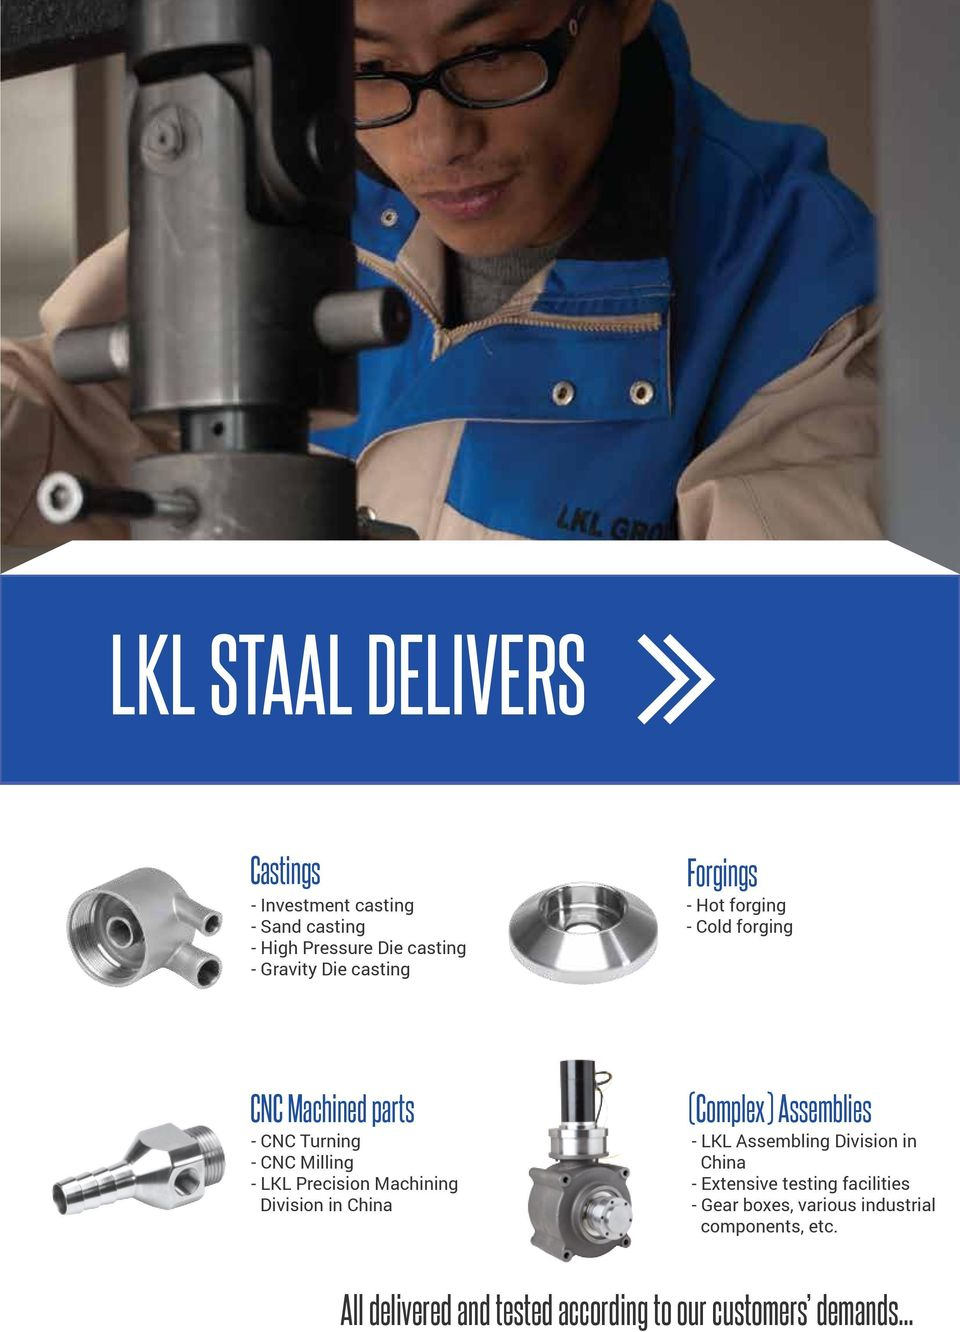 Machining Division in China (Complex) Assemblies - LKL Assembling Division in China - Extensive testing